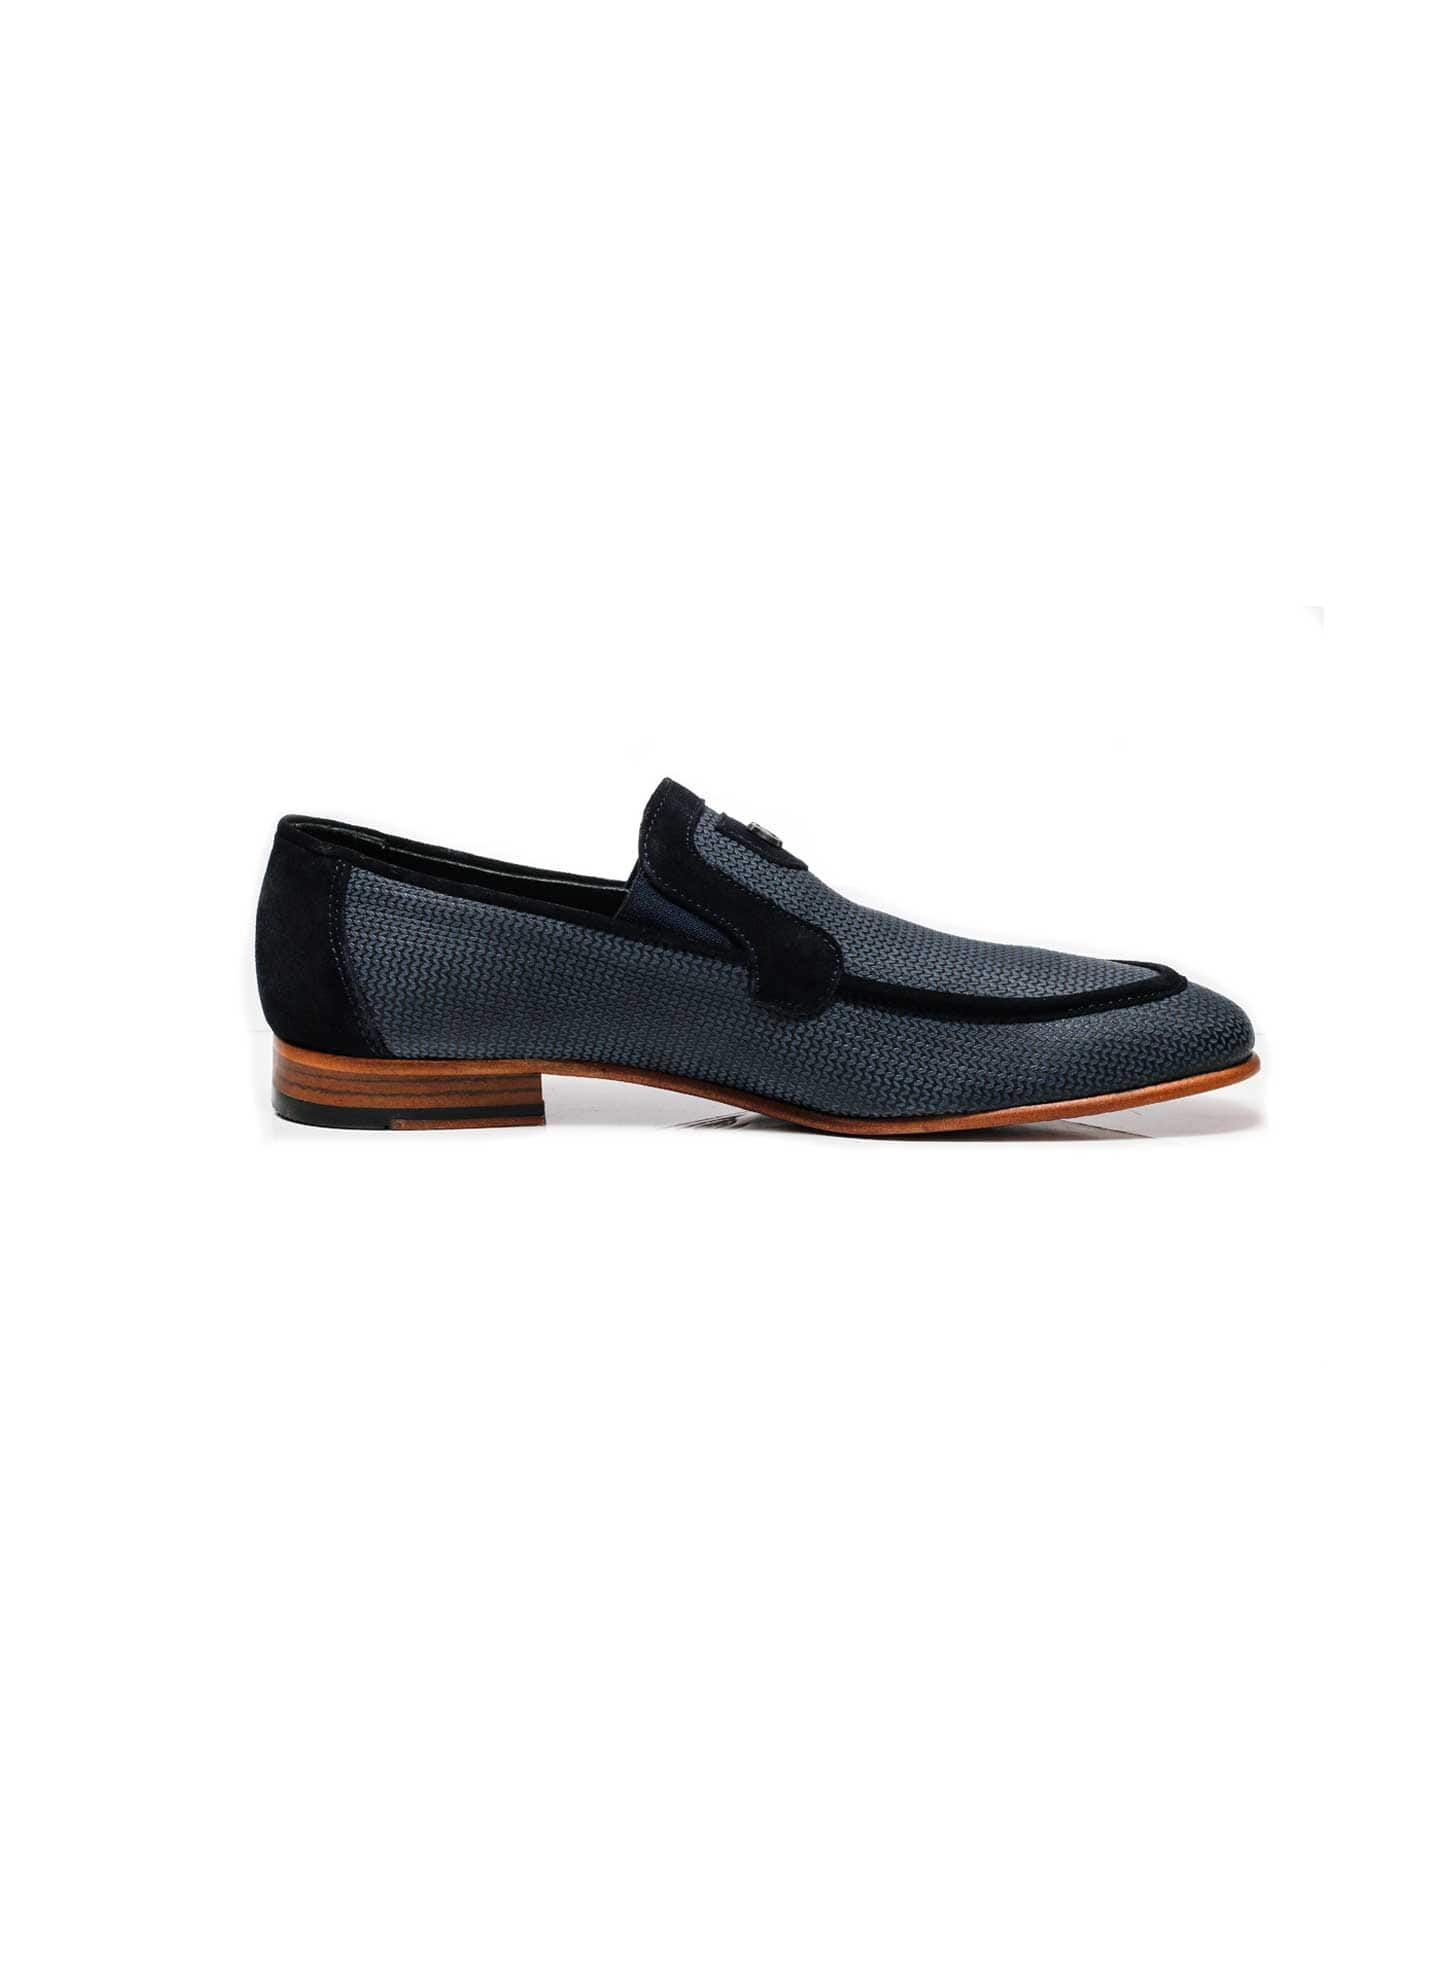 velvet-penny-loafer-2